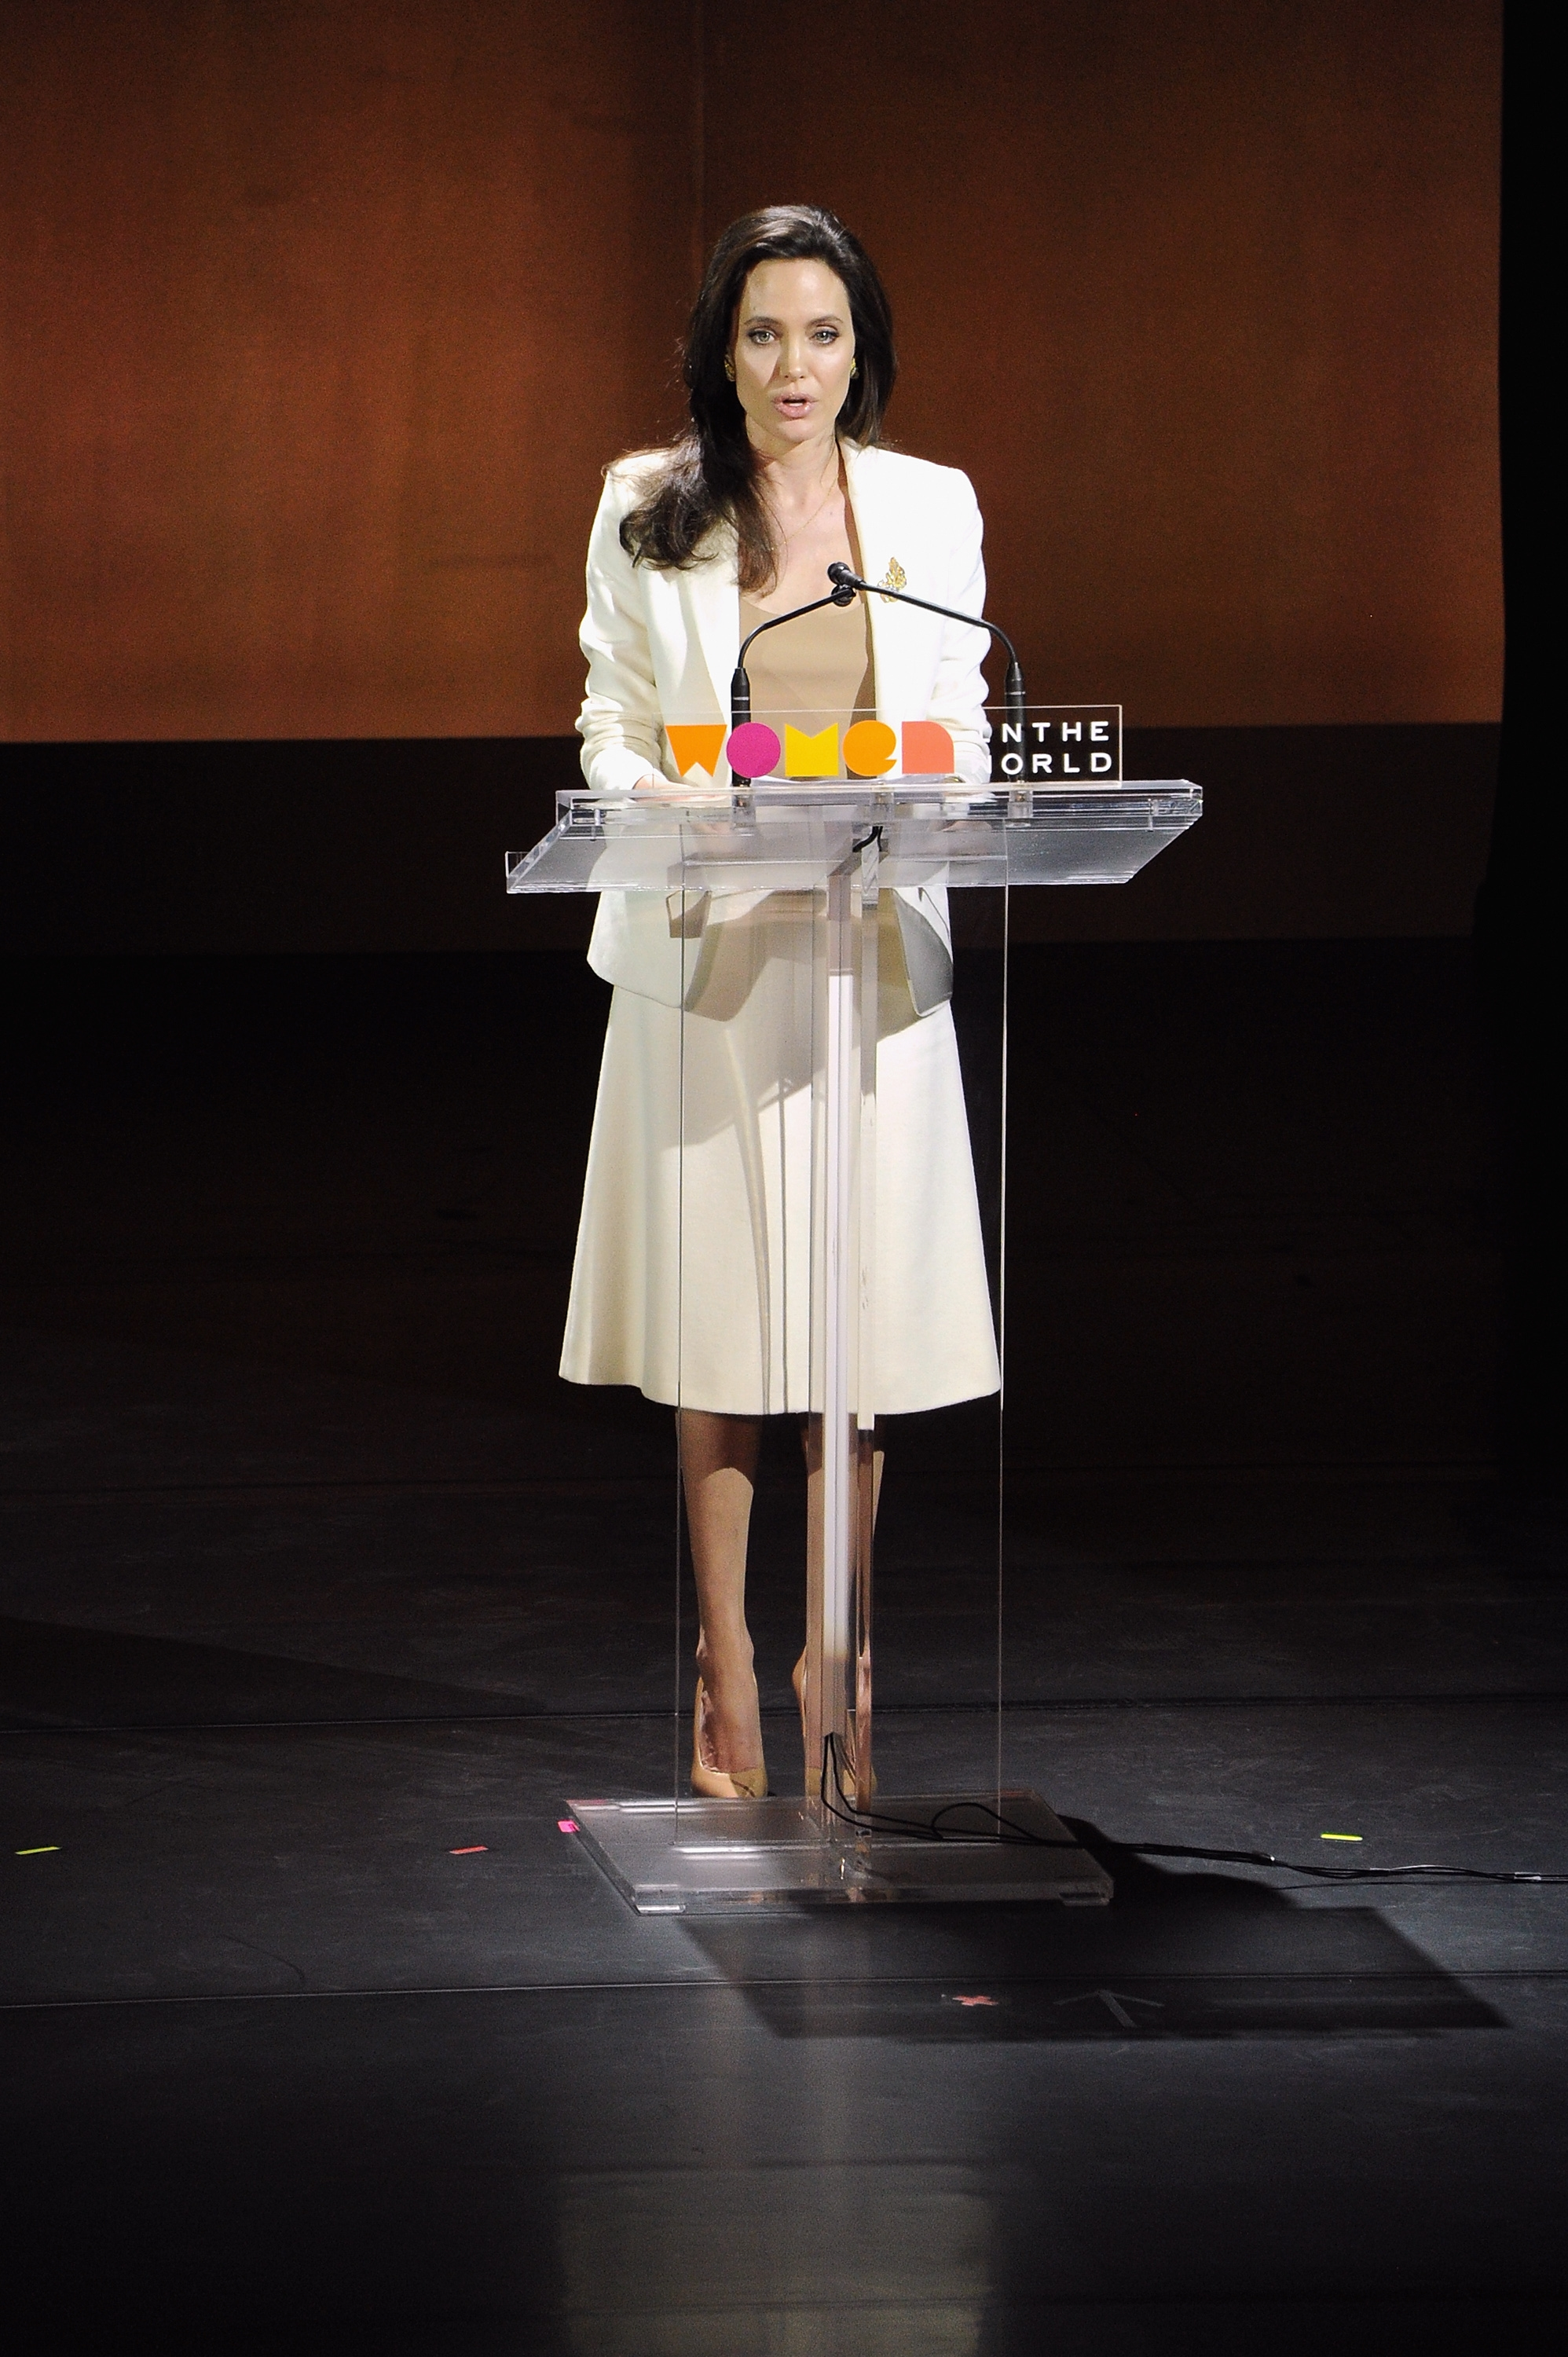 Actress Angelina Jolie speaks on stage during the Women In the World Summit Friday in New York City.